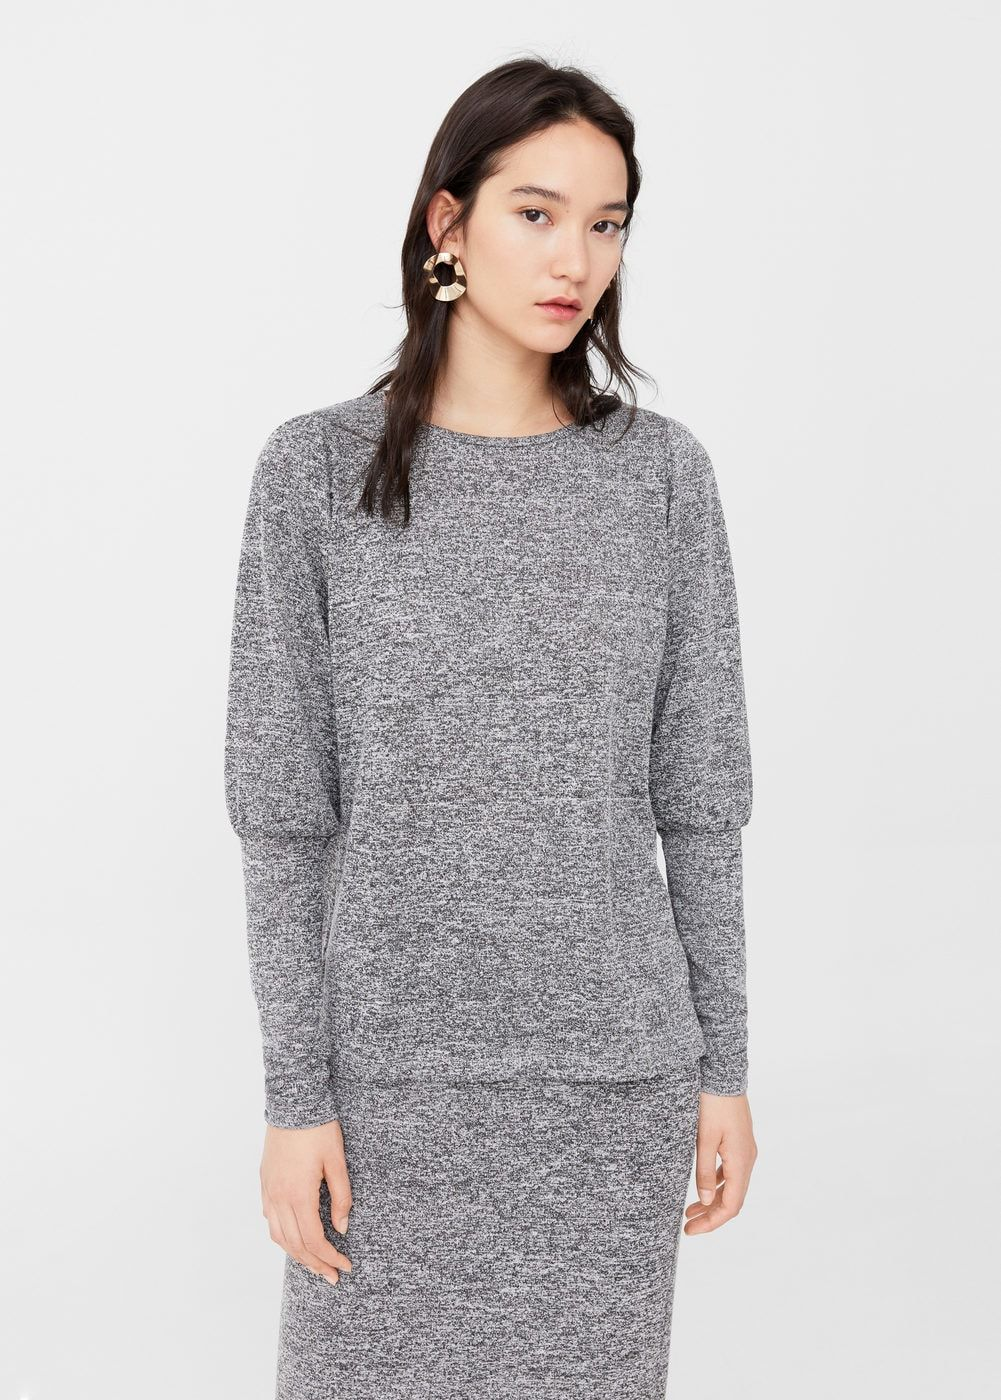 Puffed sleeves sweater woman woman